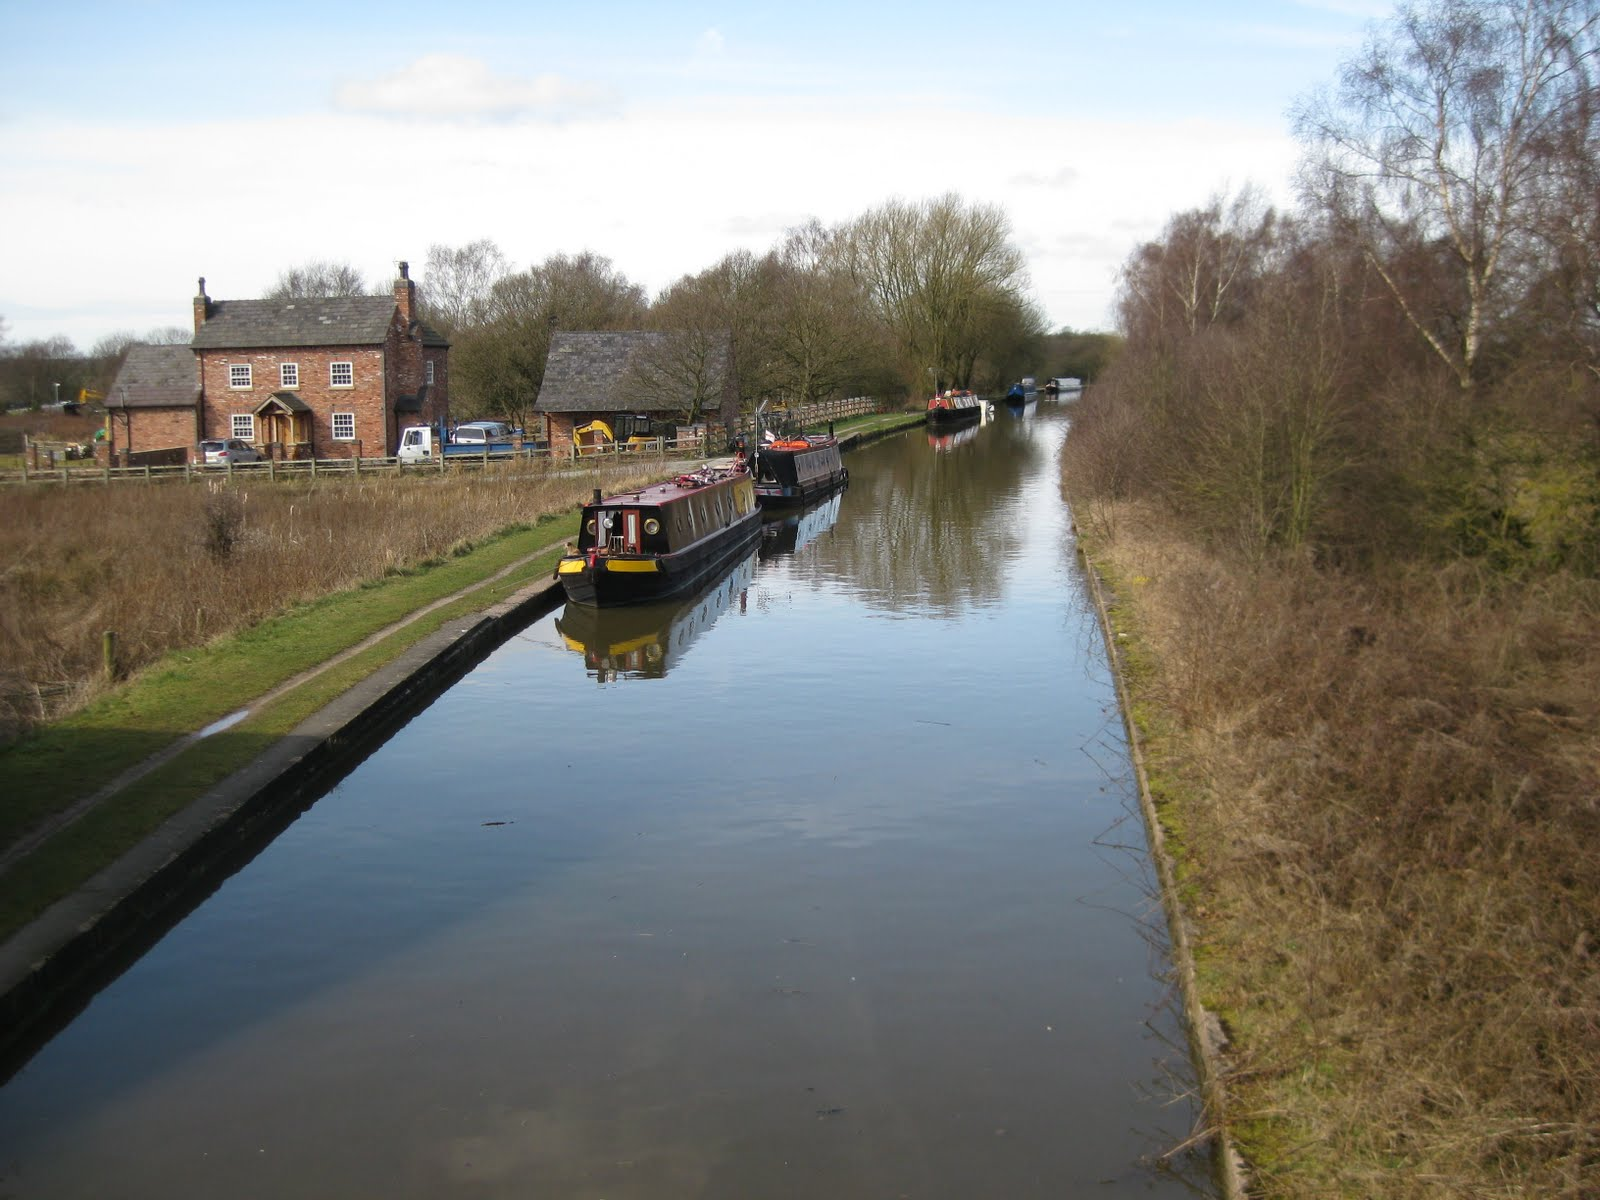 More canal scenes